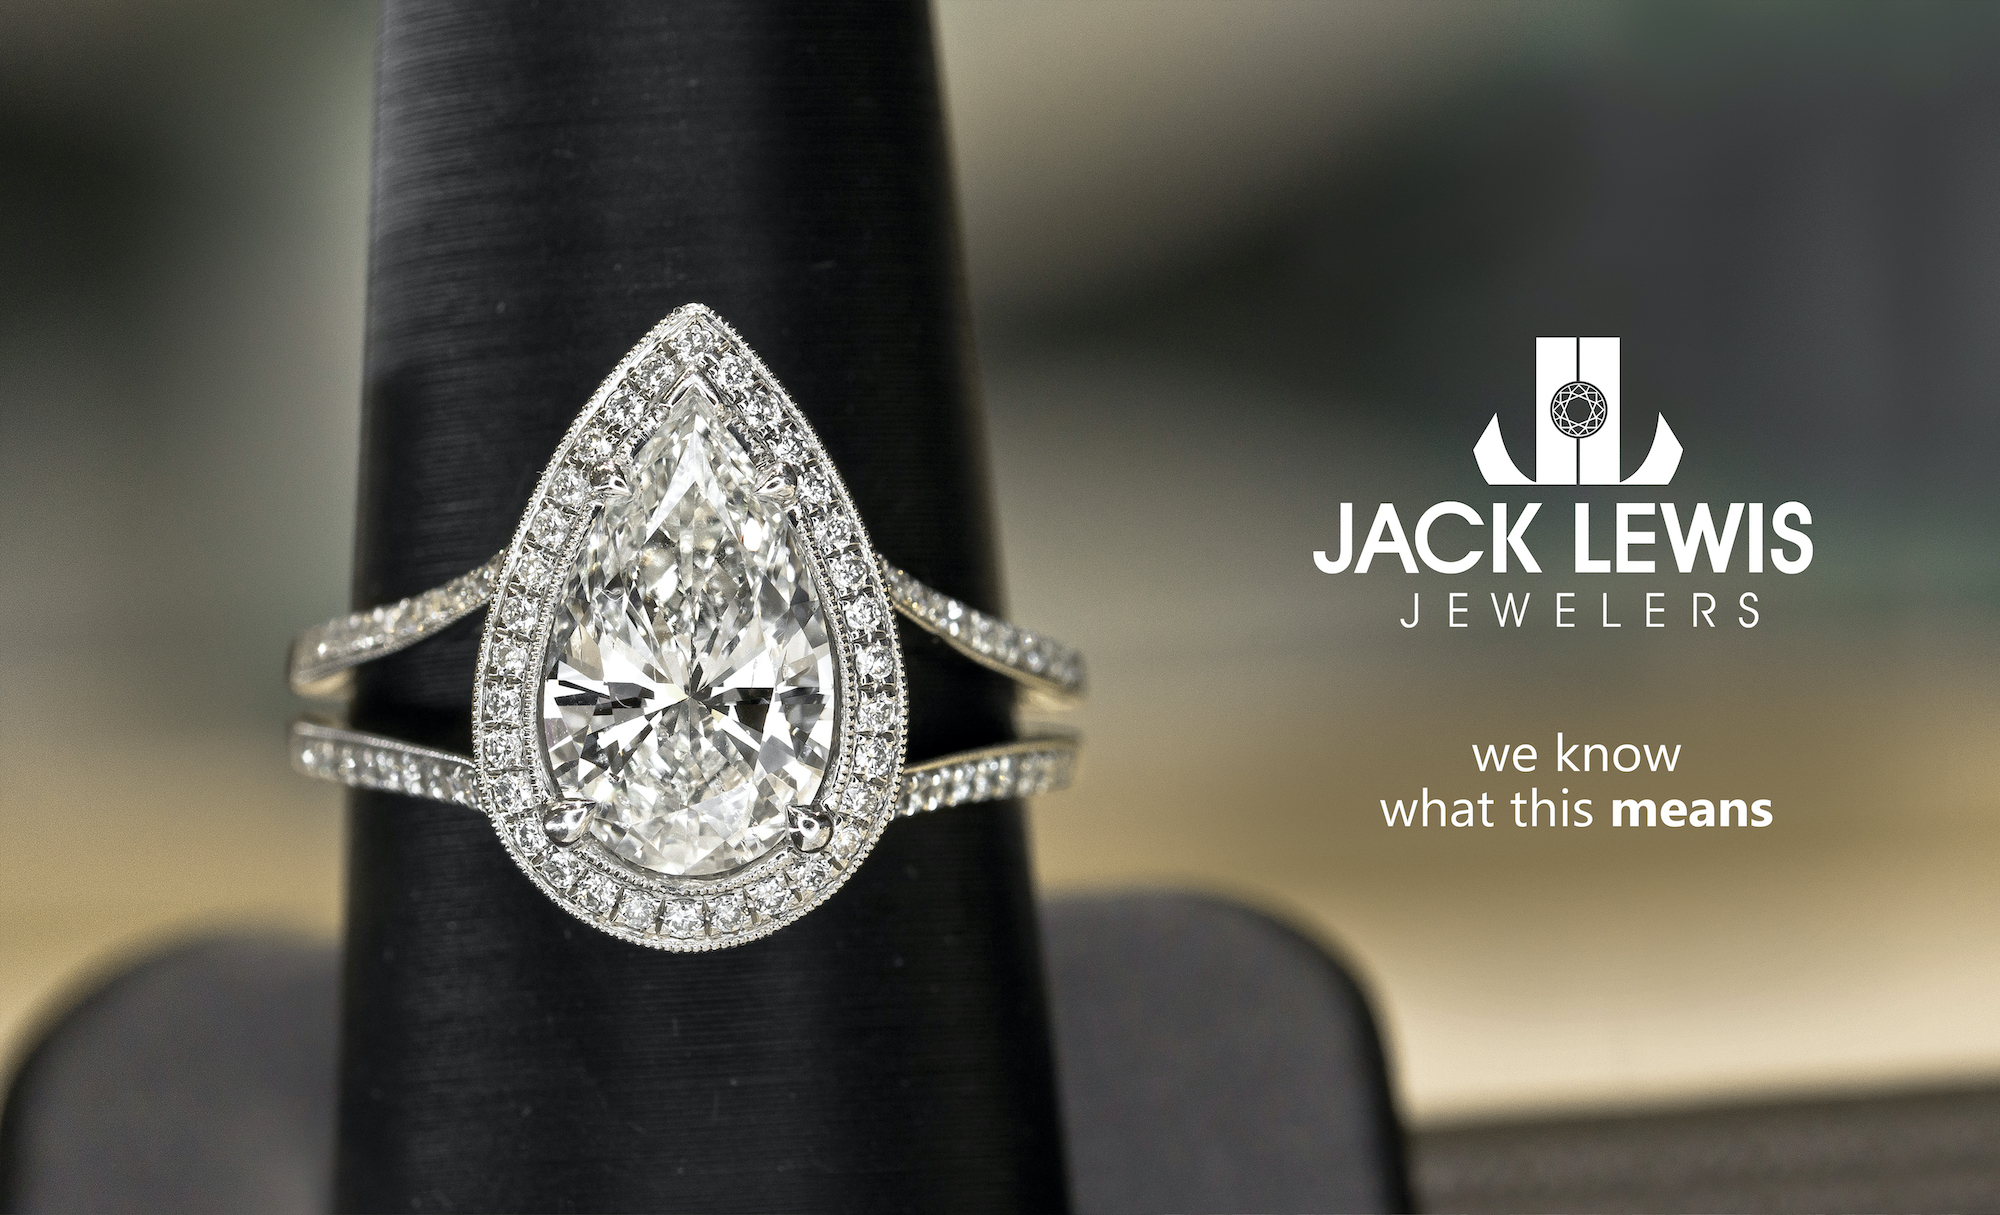 """Advertising billboard with a large pear shaped diamond engagement ring set in white gold. It sits next to the Jack Lewis Jewelers logo and has the phrase """"we know what this means"""""""